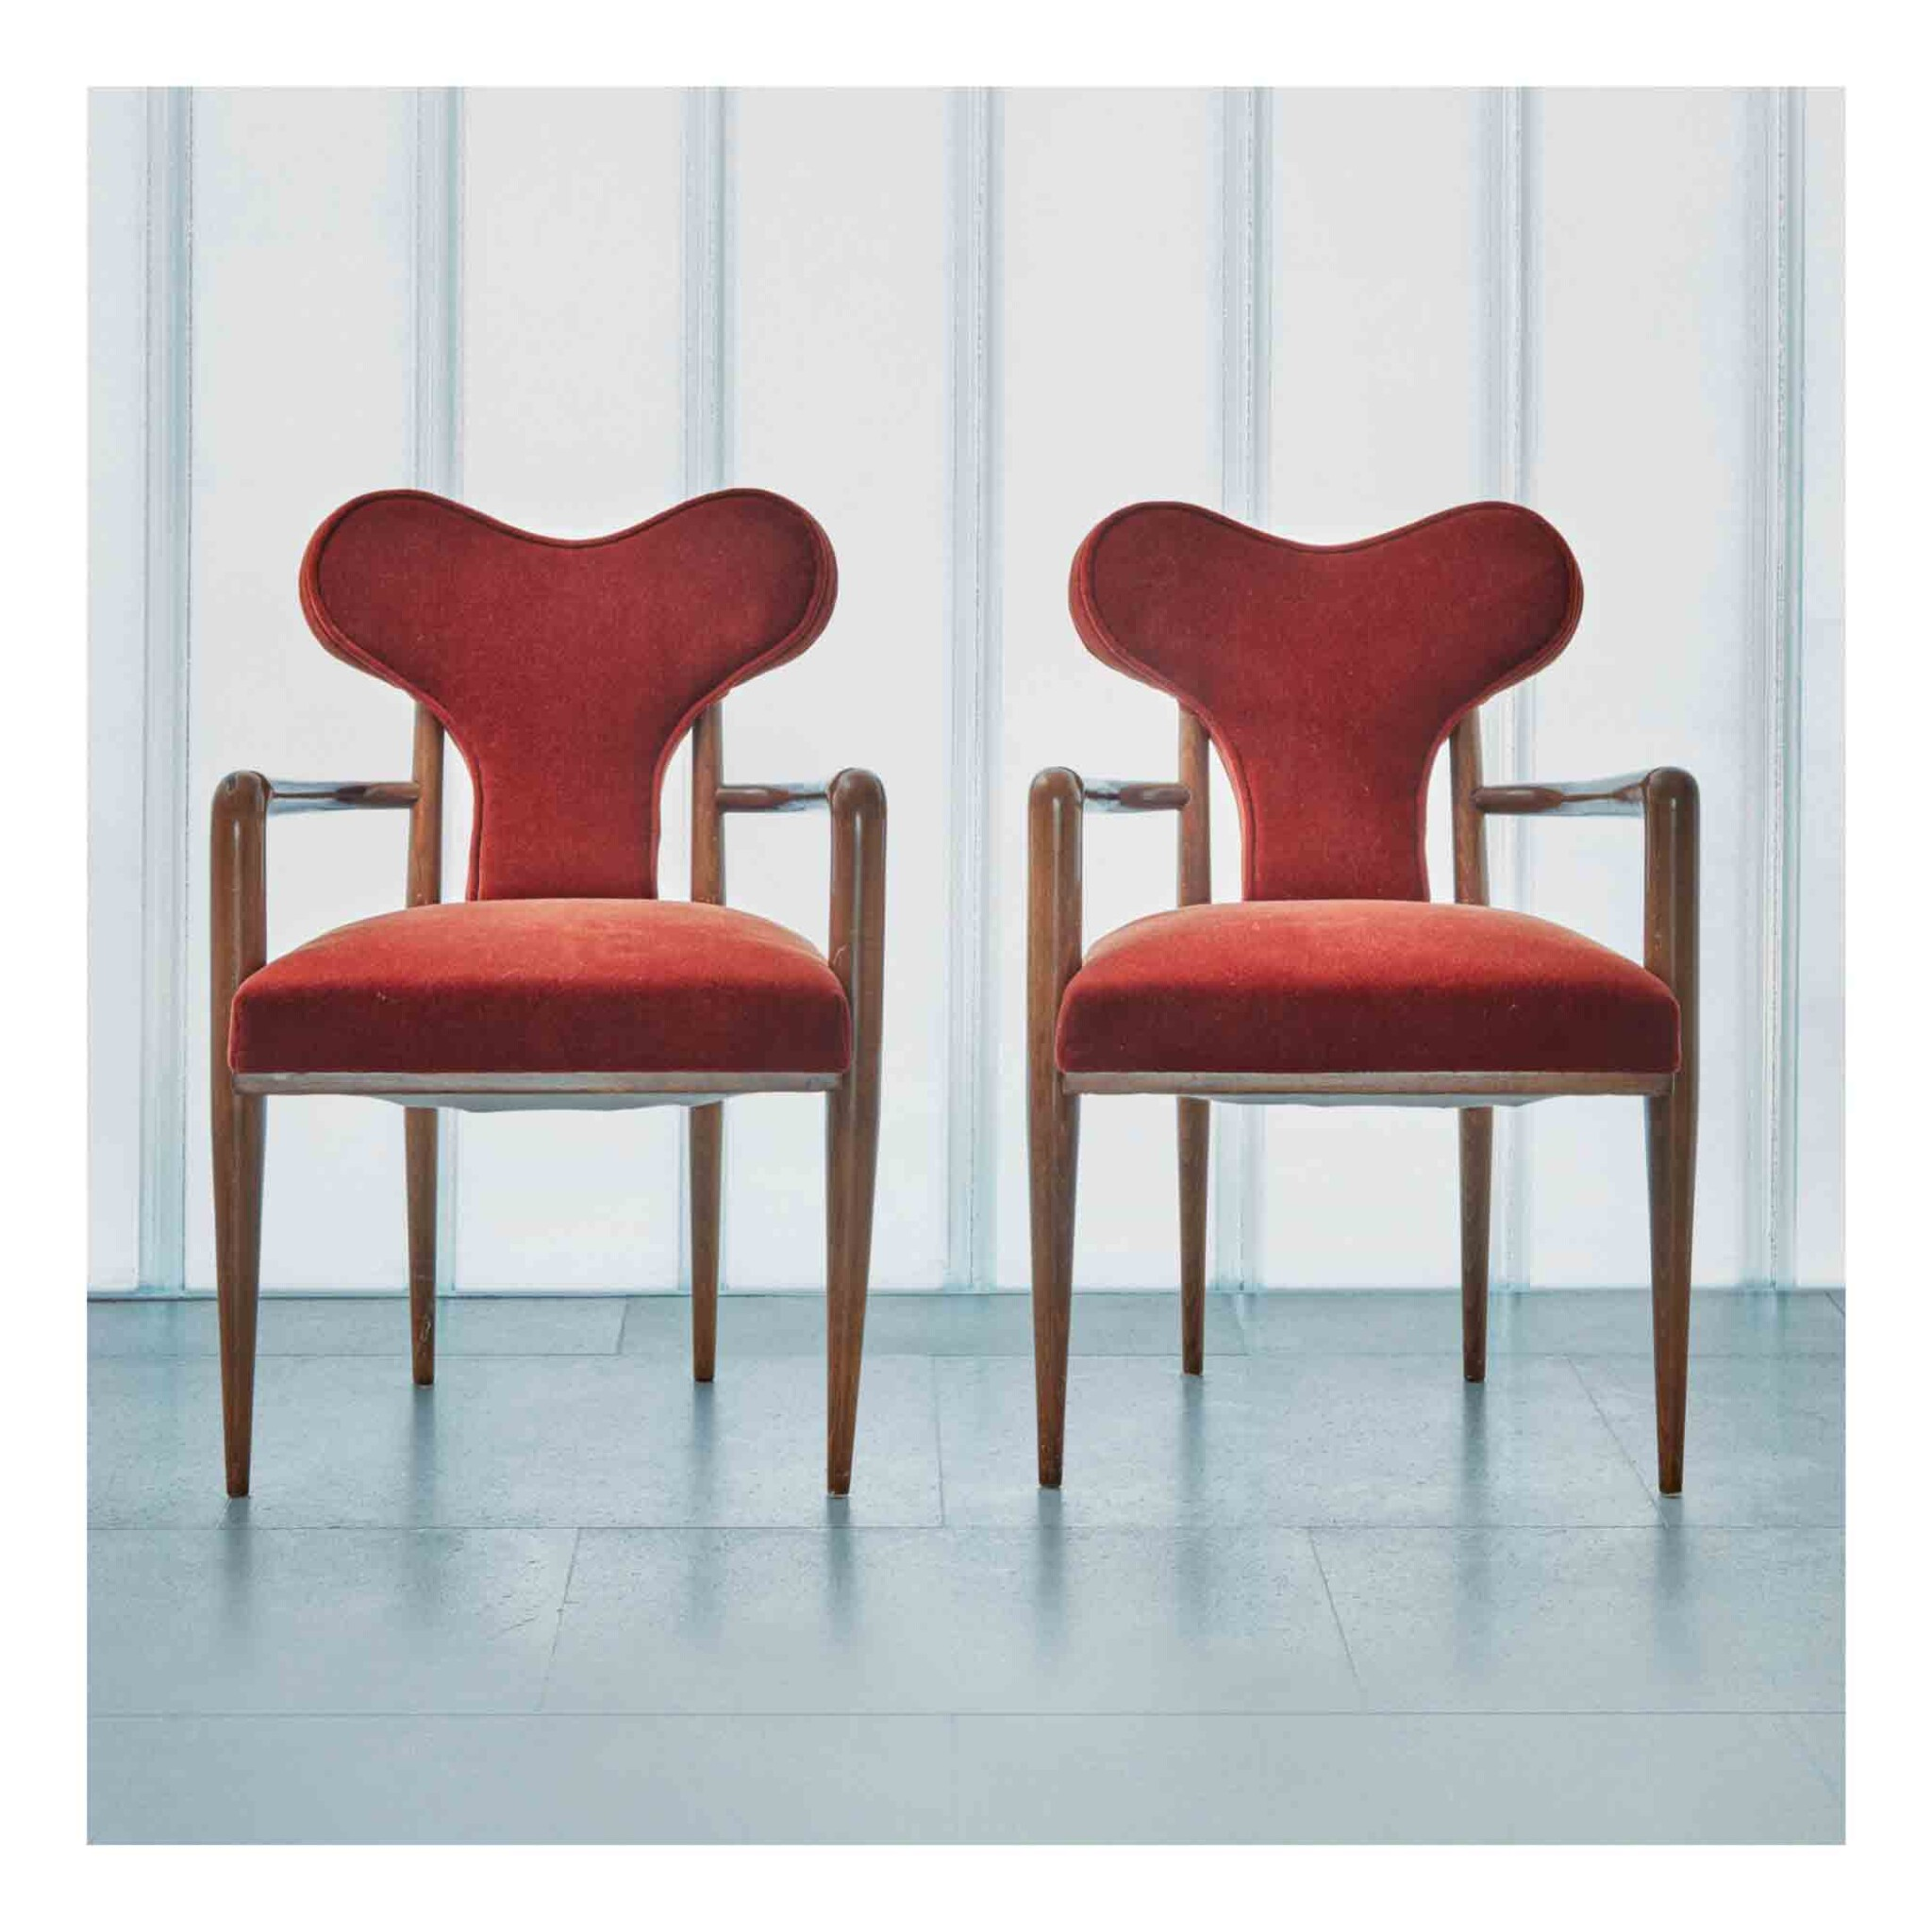 """View 1 of Lot 399. Pair of """"Coeur"""" Armchairs."""